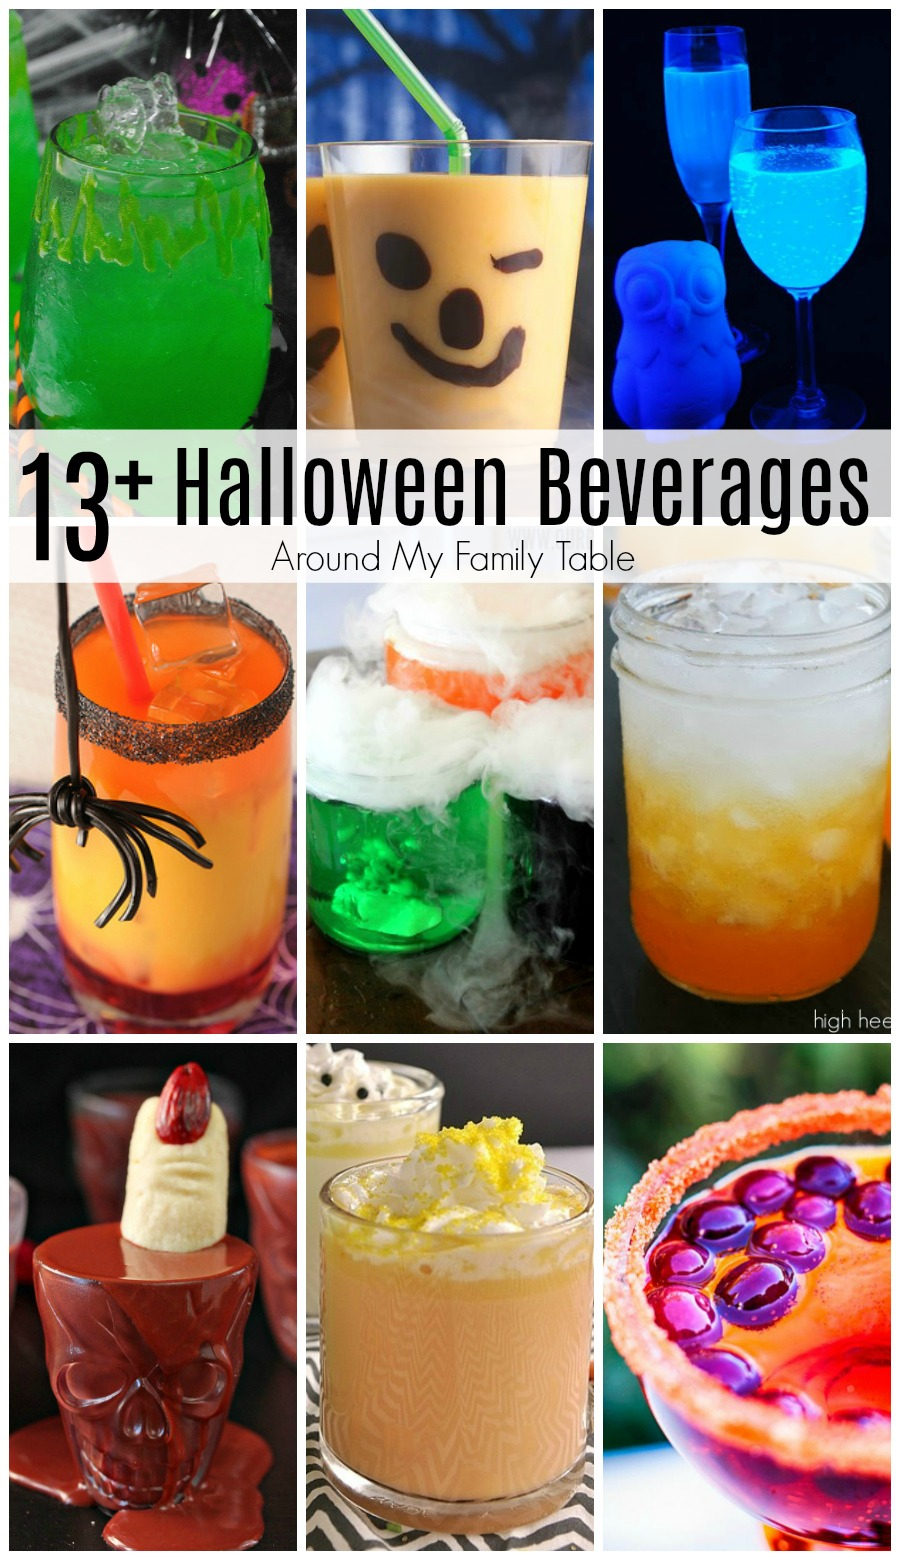 Halloween is almost here, and it's time to celebrate with over 13 Halloween Beverage Recipes that are perfect to punch up your party!